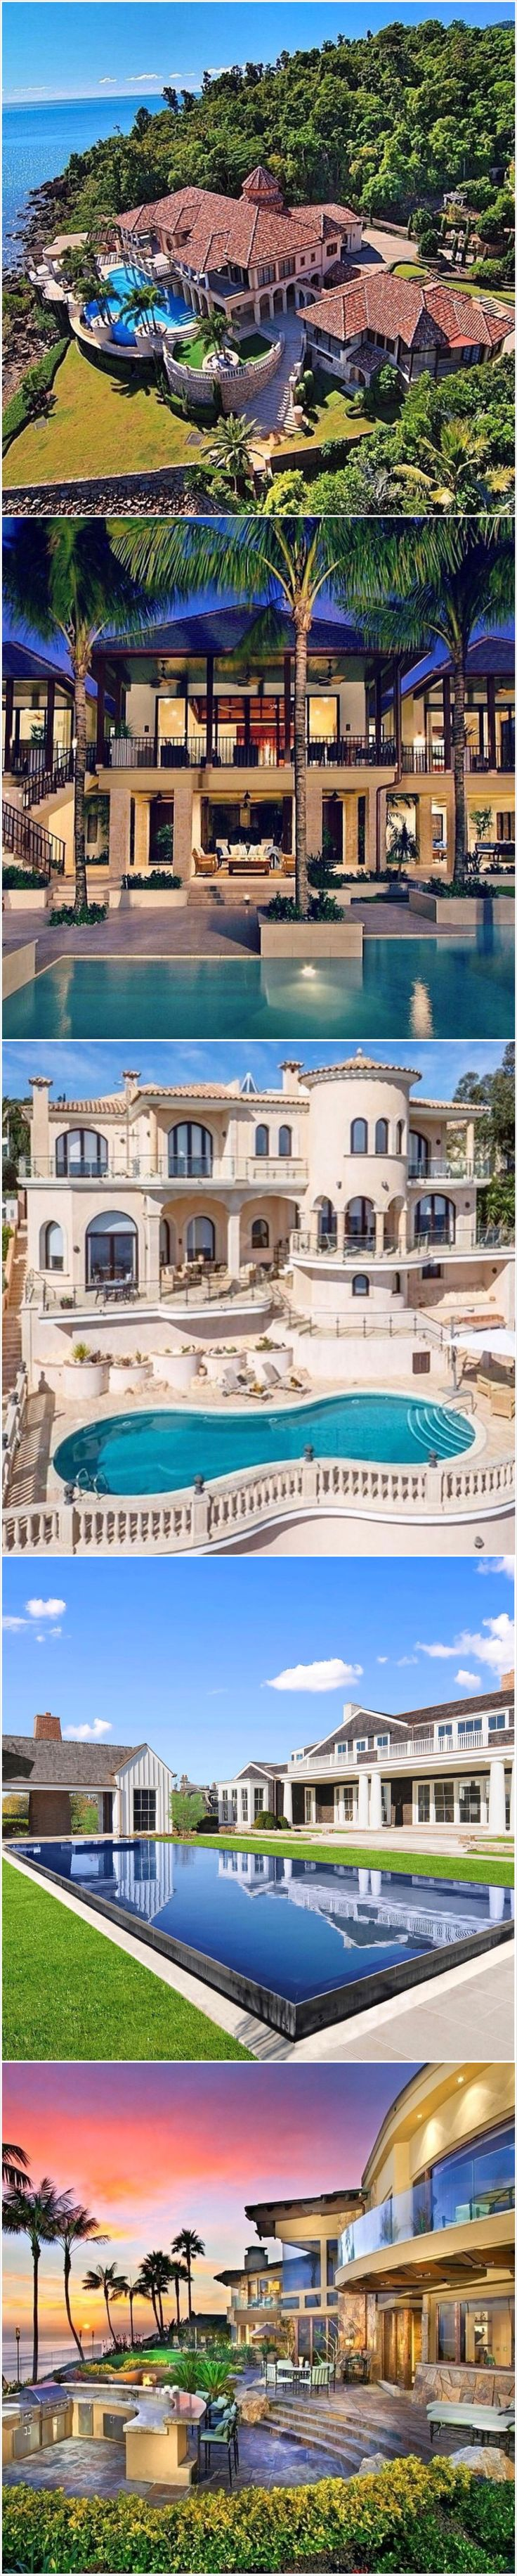 best 25+ billionaire homes ideas on pinterest | luxurious homes